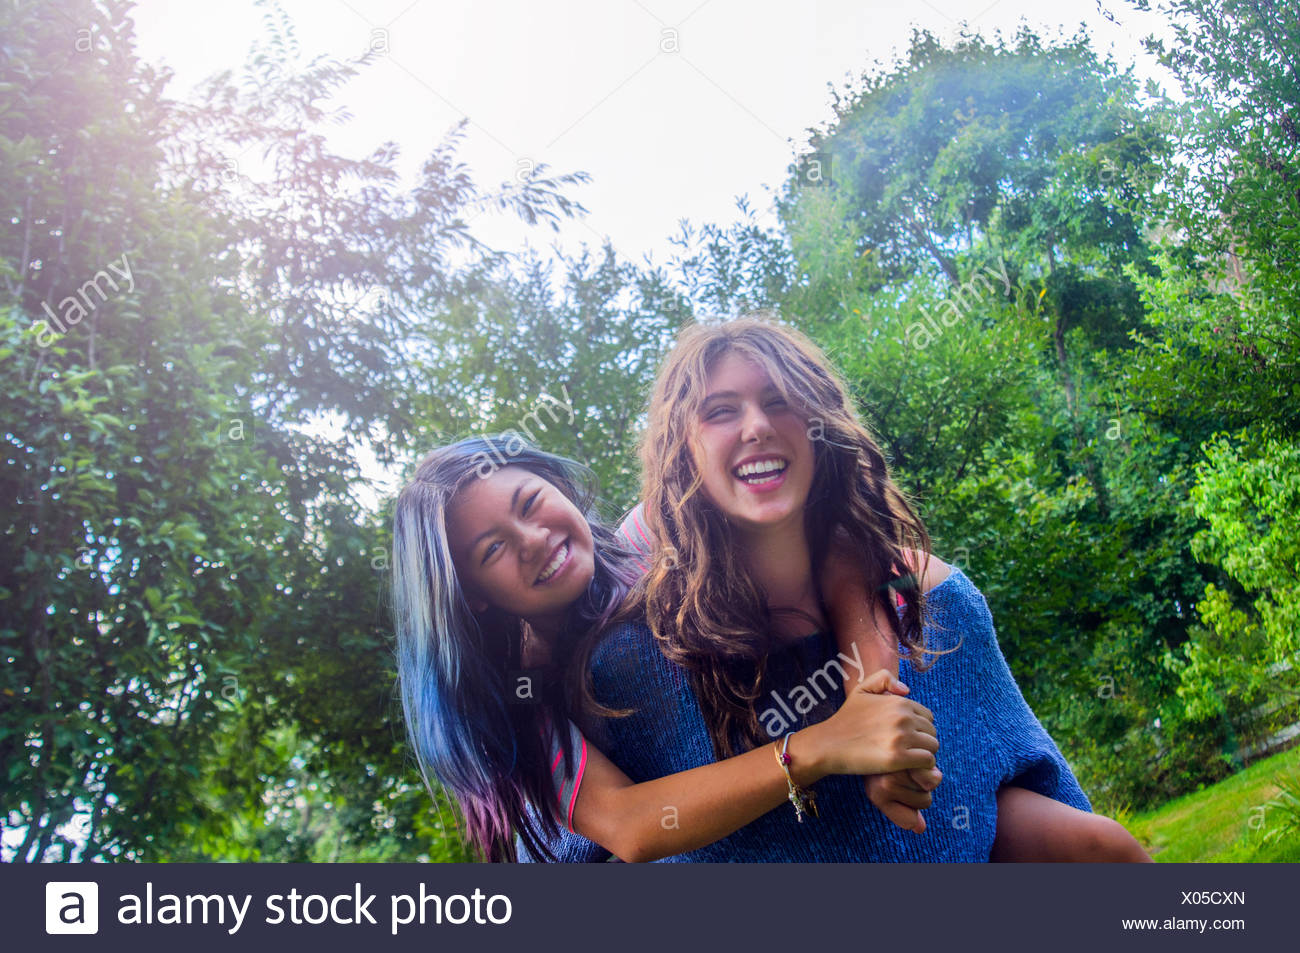 Two teenagers dancing messing around, outdoors - Stock Image